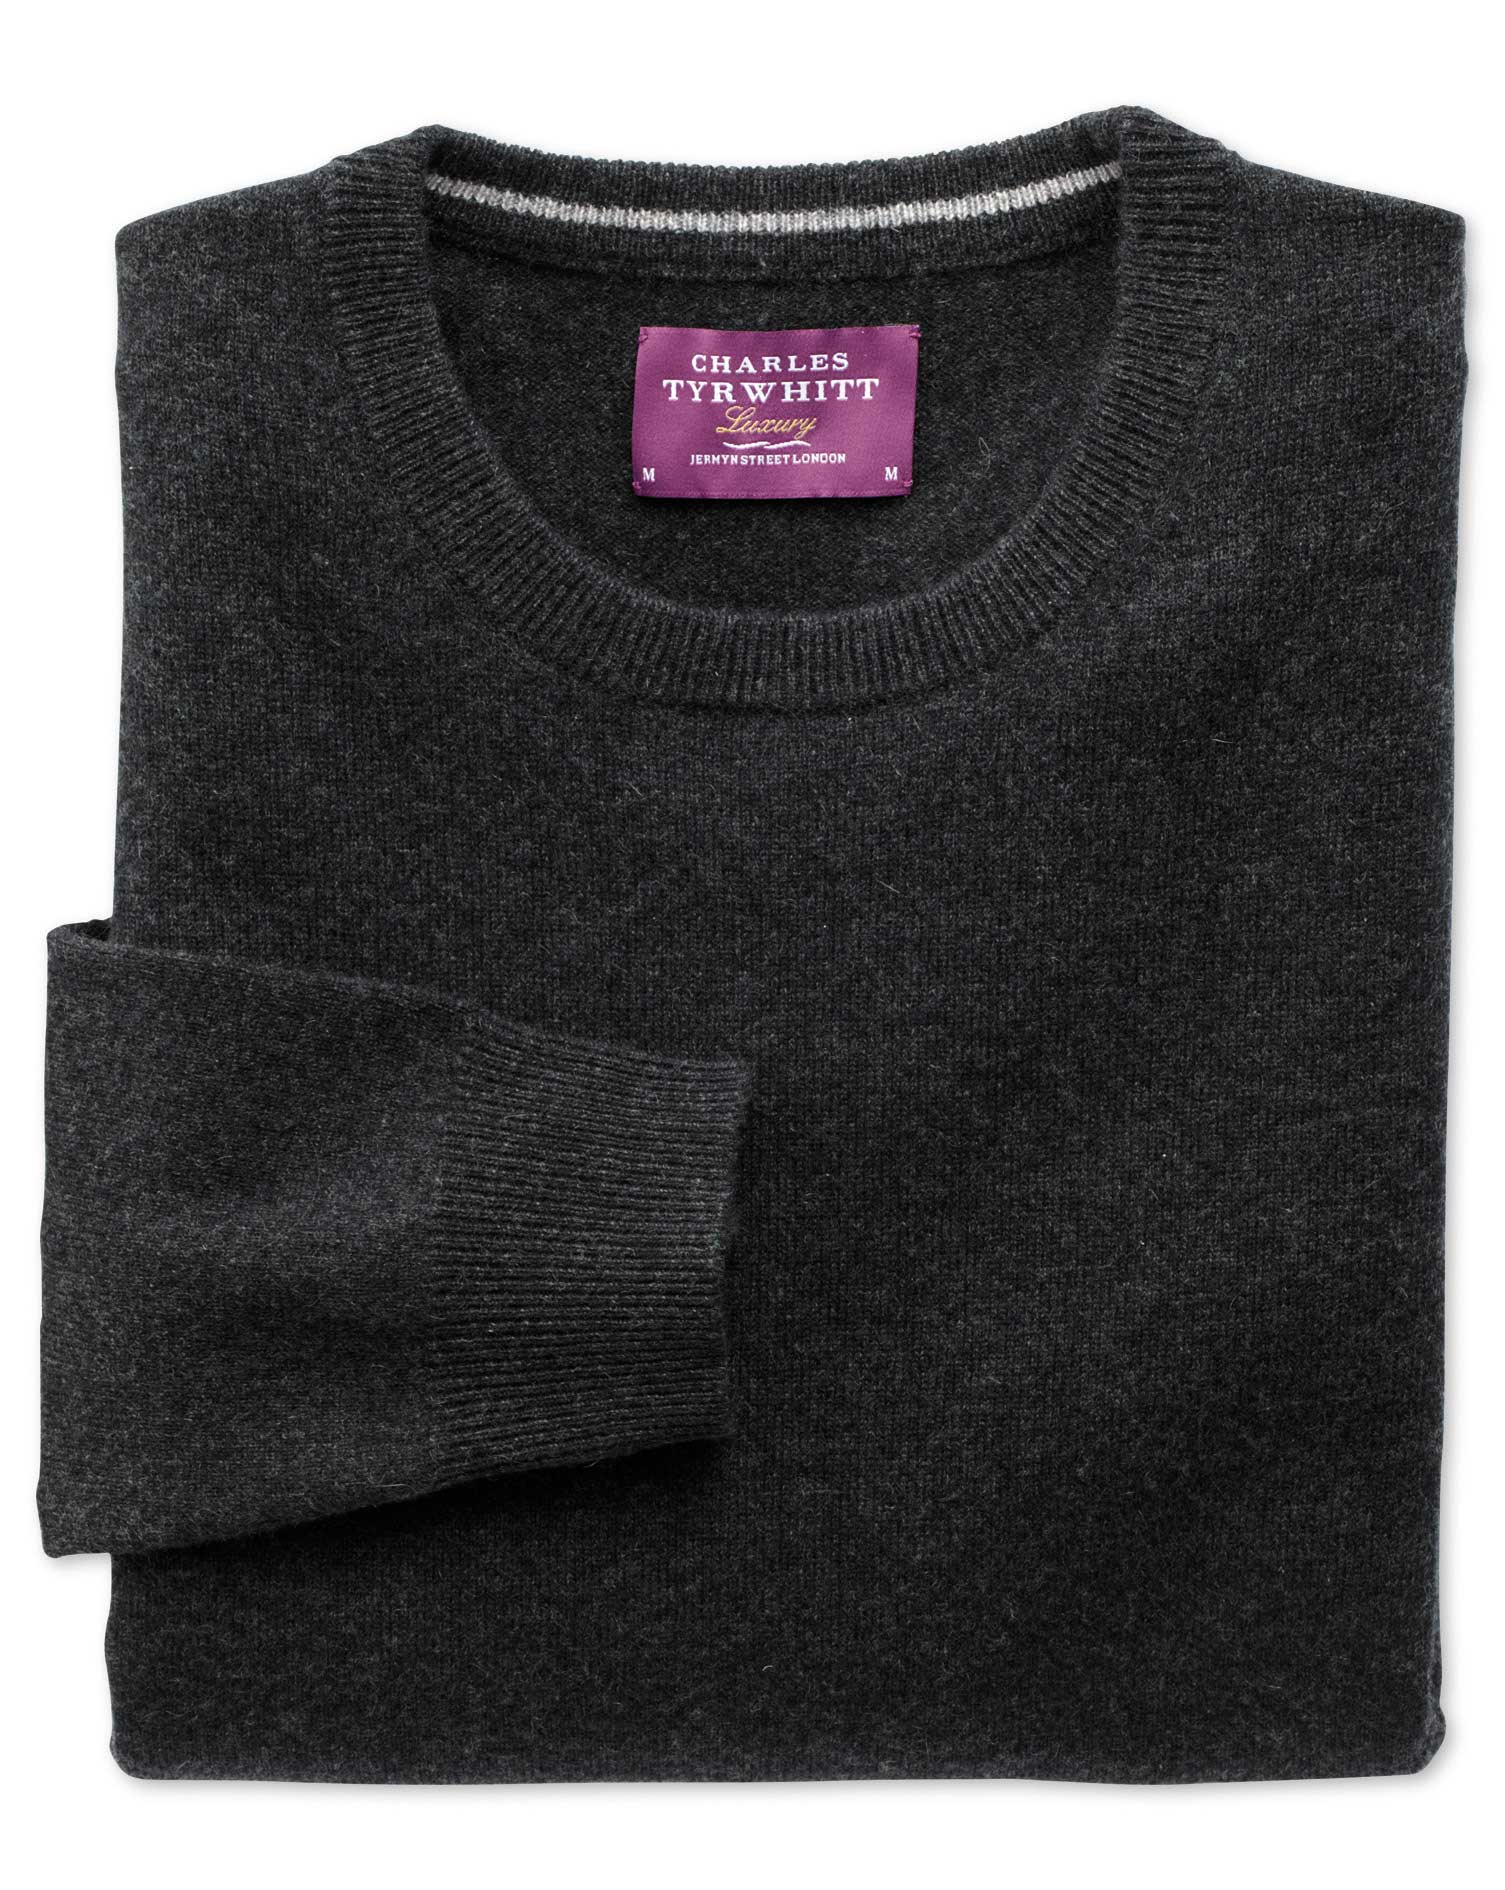 Charcoal Cashmere Crew Neck Jumper Size XXXL by Charles Tyrwhitt